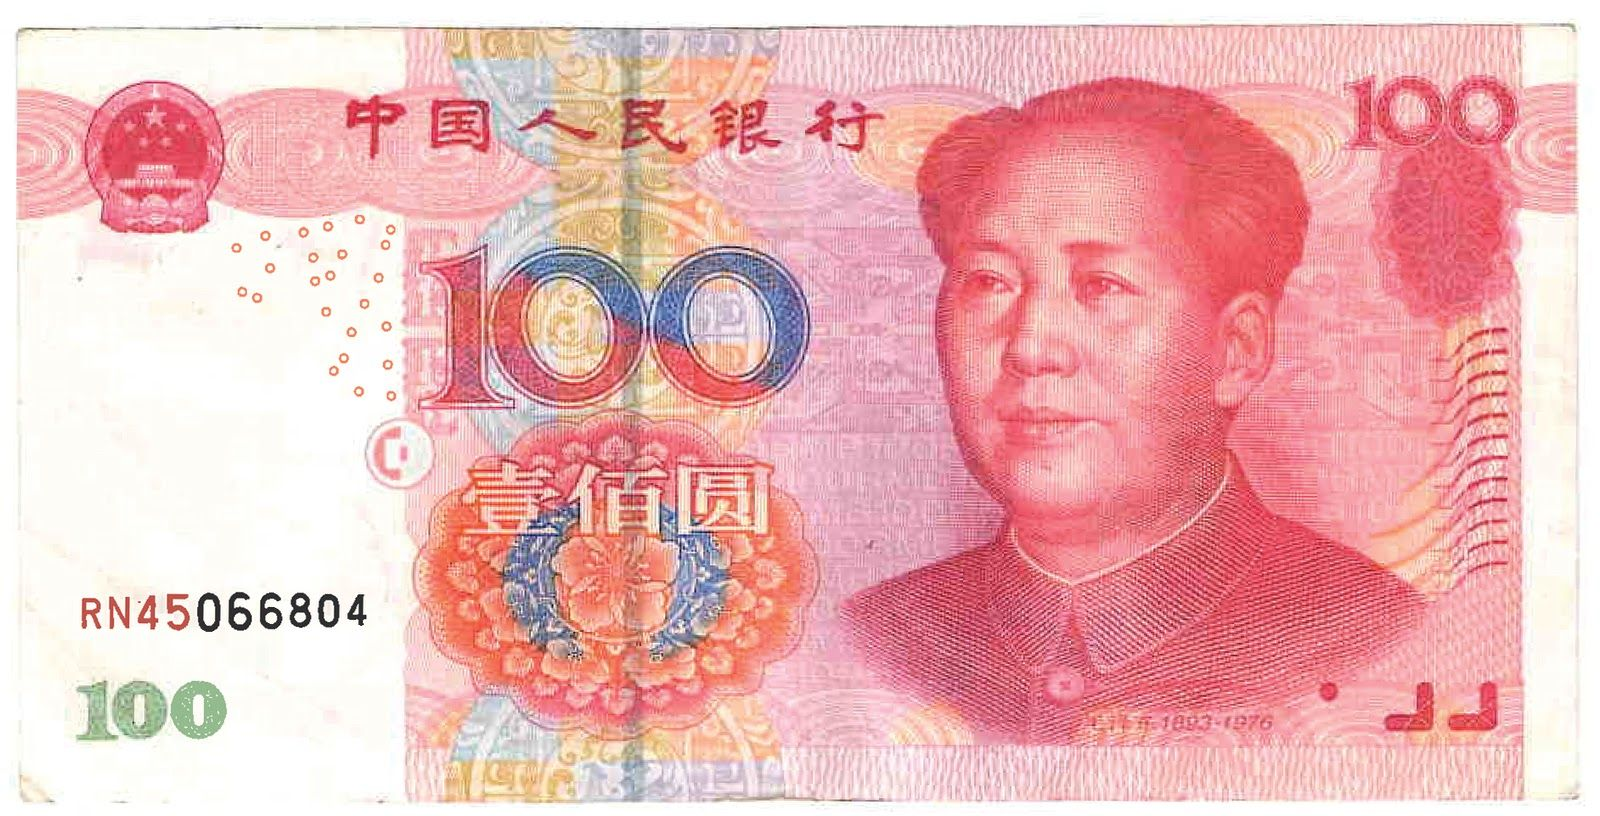 Chinese 100 Dollar Bill Google Search Bank Notes Reserve Currency China